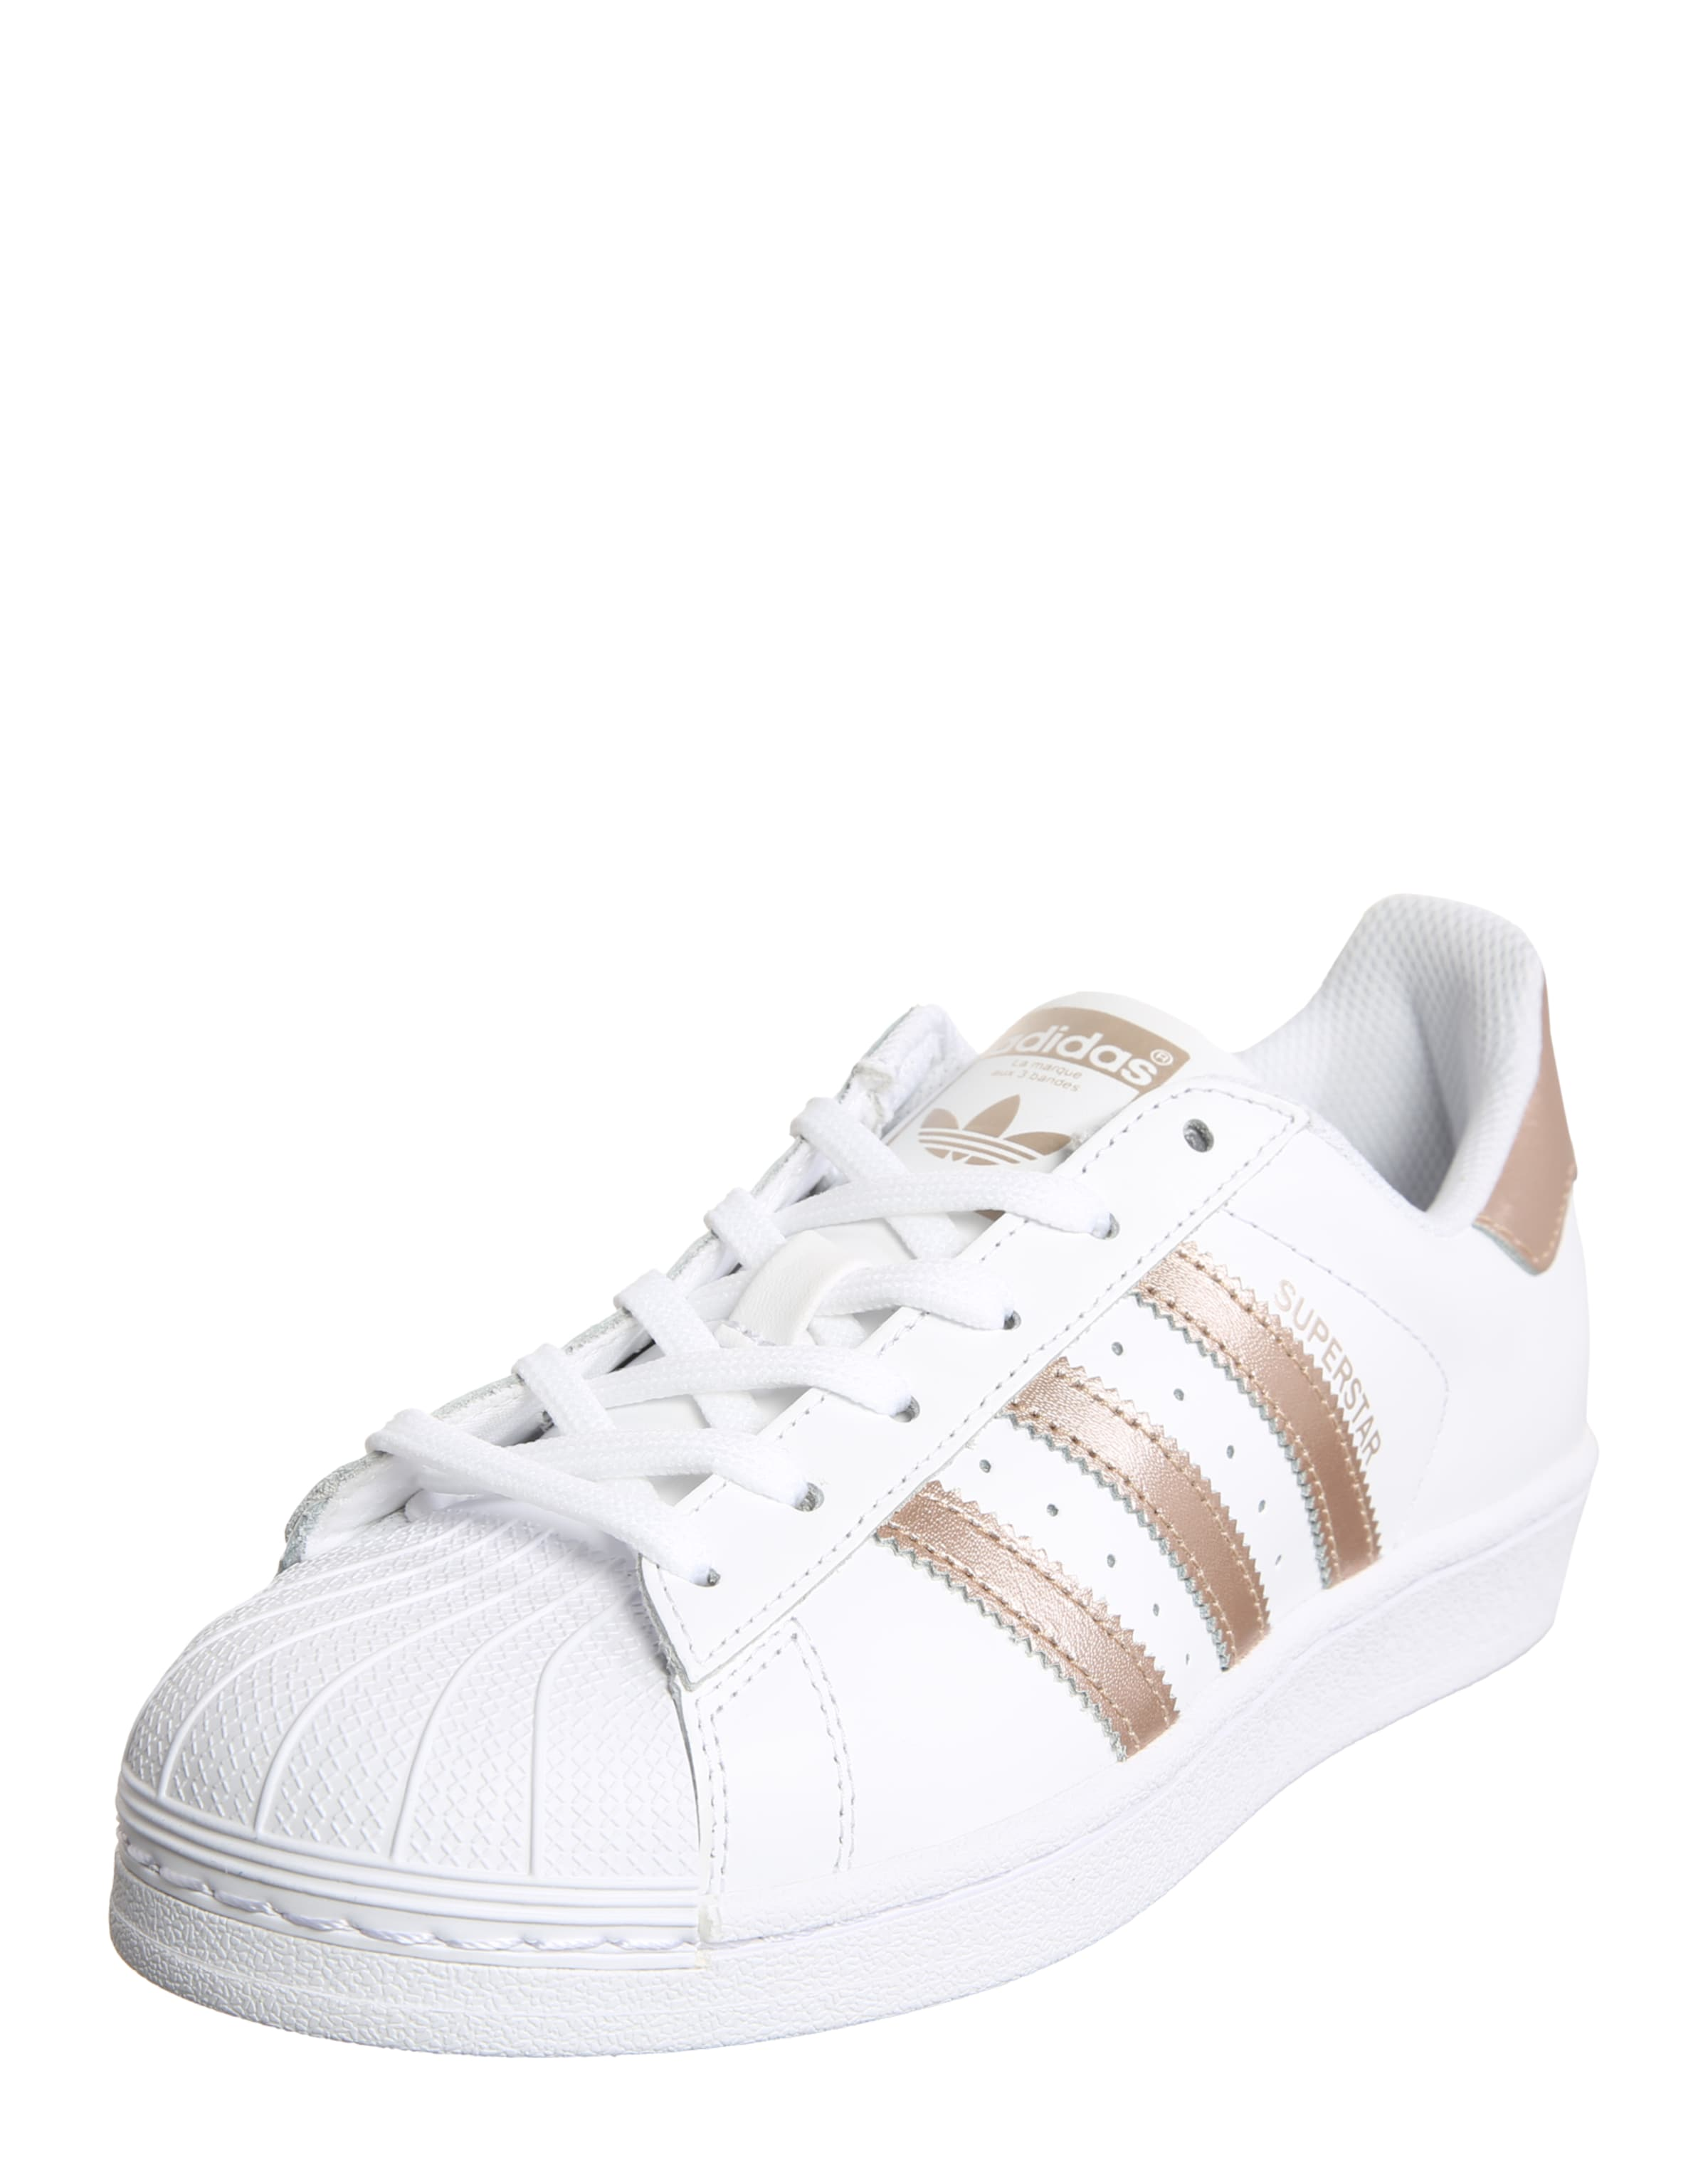 Originals En OrBlanc Basses Adidas Baskets 'superstar' FJKlT1c